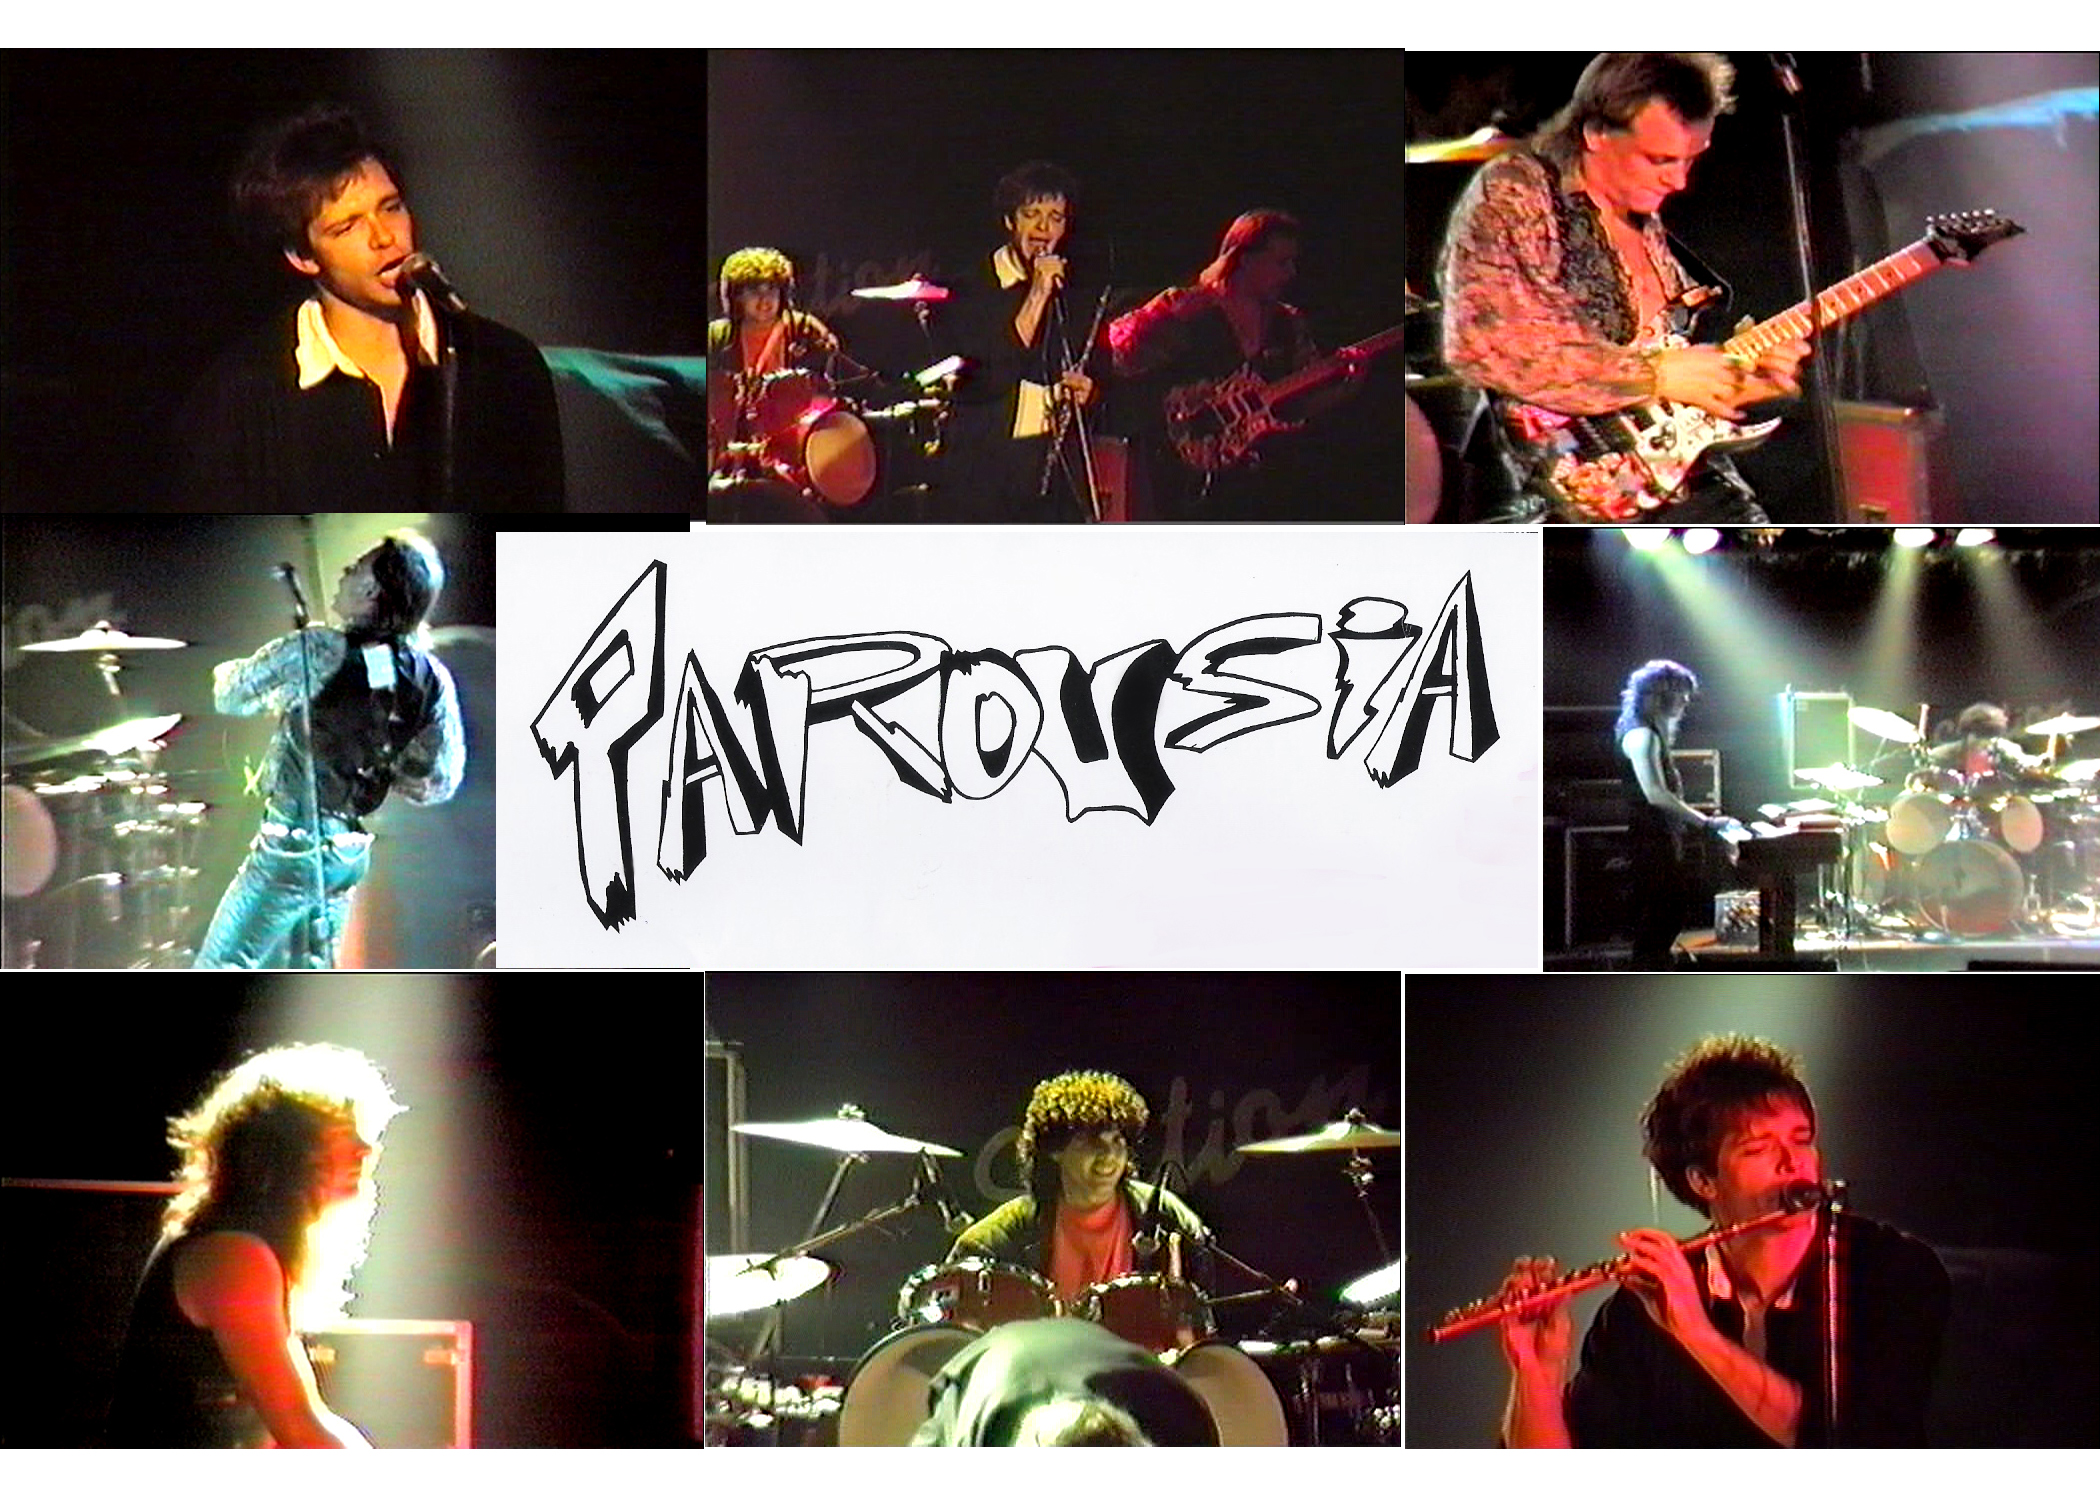 Parousia 1990: Patt Connolly (vocals/flute); Dudley Taft (vocals/guitars); Marty Leggett (keyboards); Gerry N. Cannizzaro (drums).